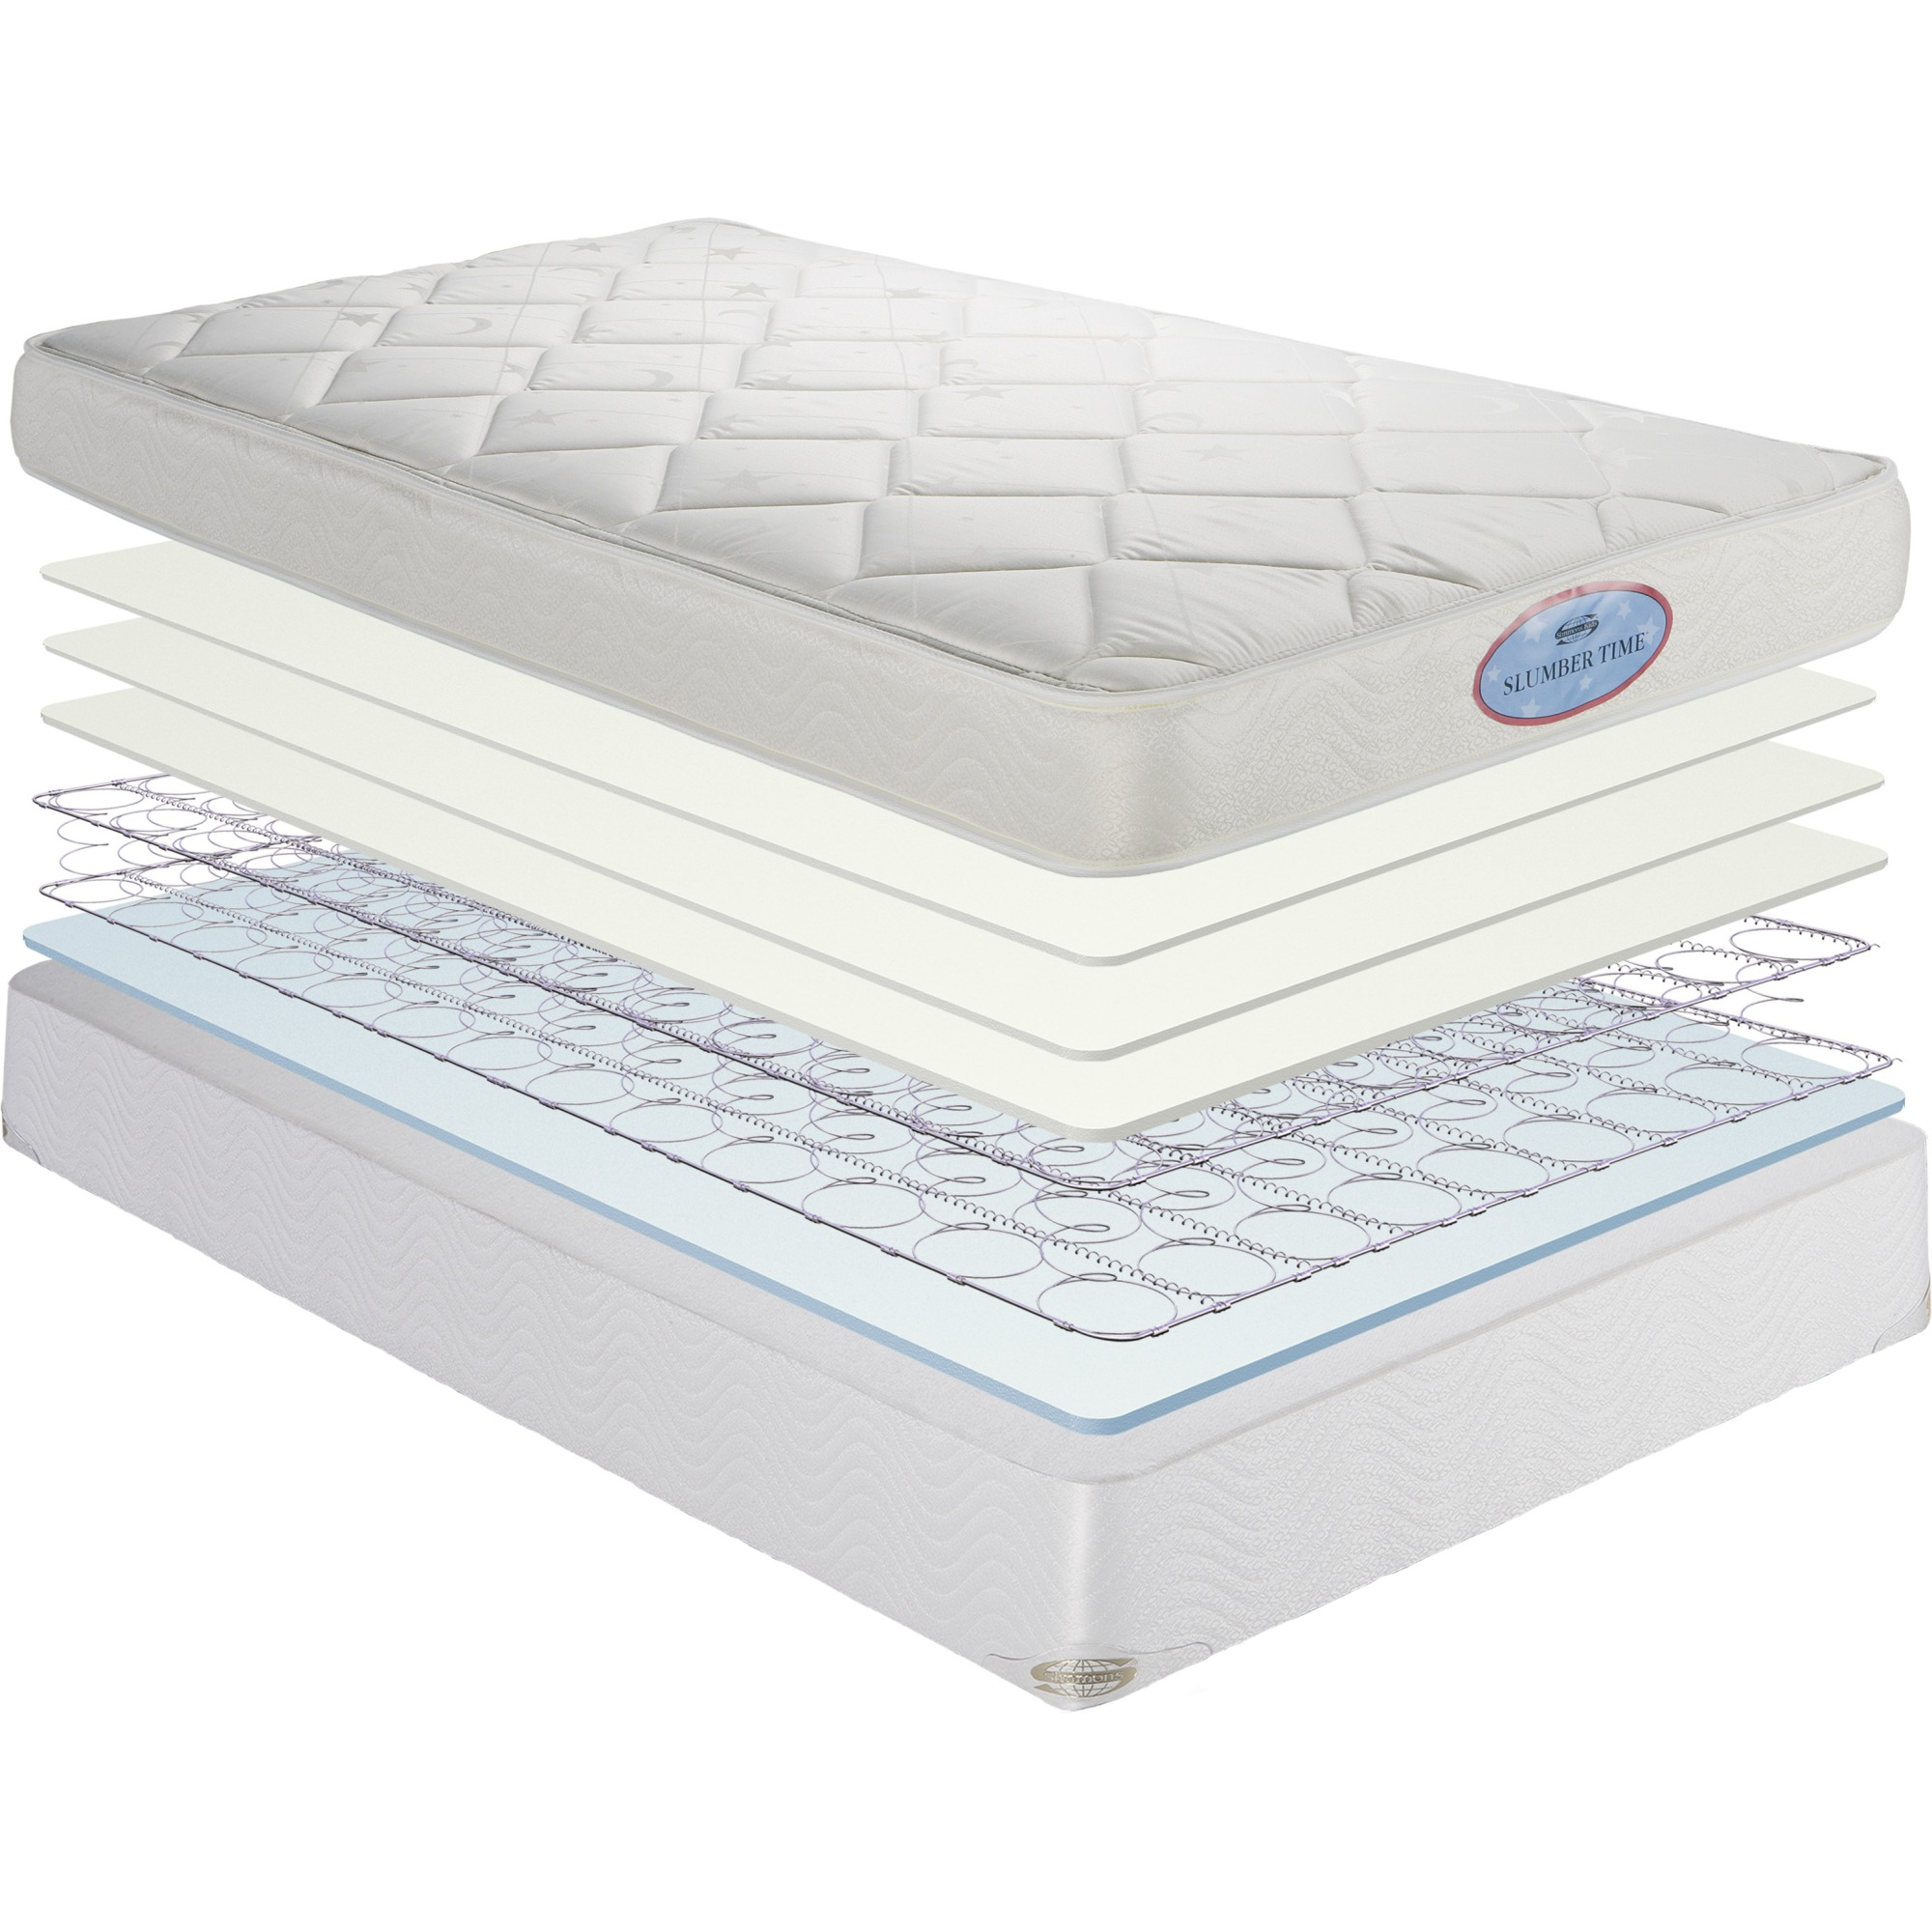 mattress kids. slumber time firm crib \u0026 toddler mattress: mattress kids